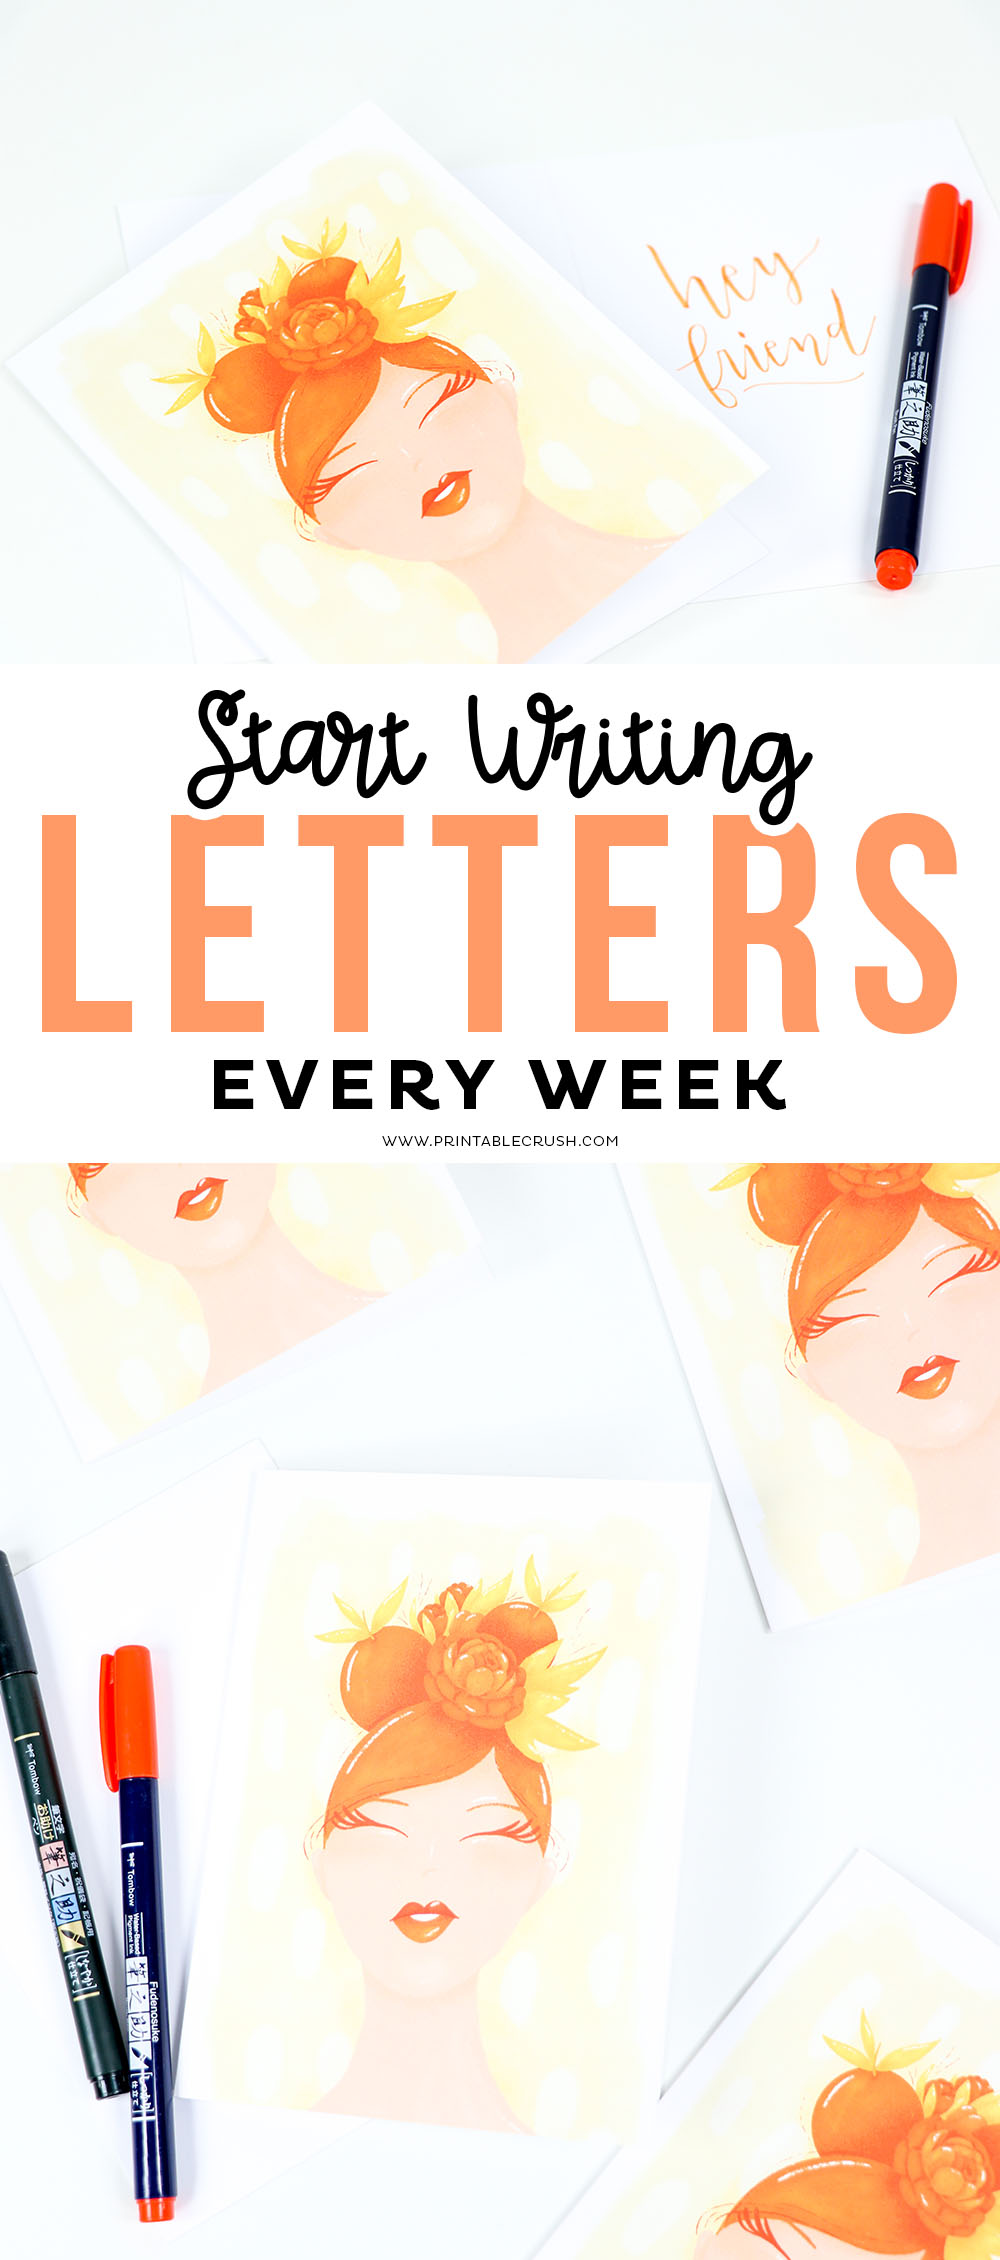 Start writing Letters EVERY WEEK with the One Per Week Subscription Box #letters #cards #oneperweek #artonacard via @printablecrush